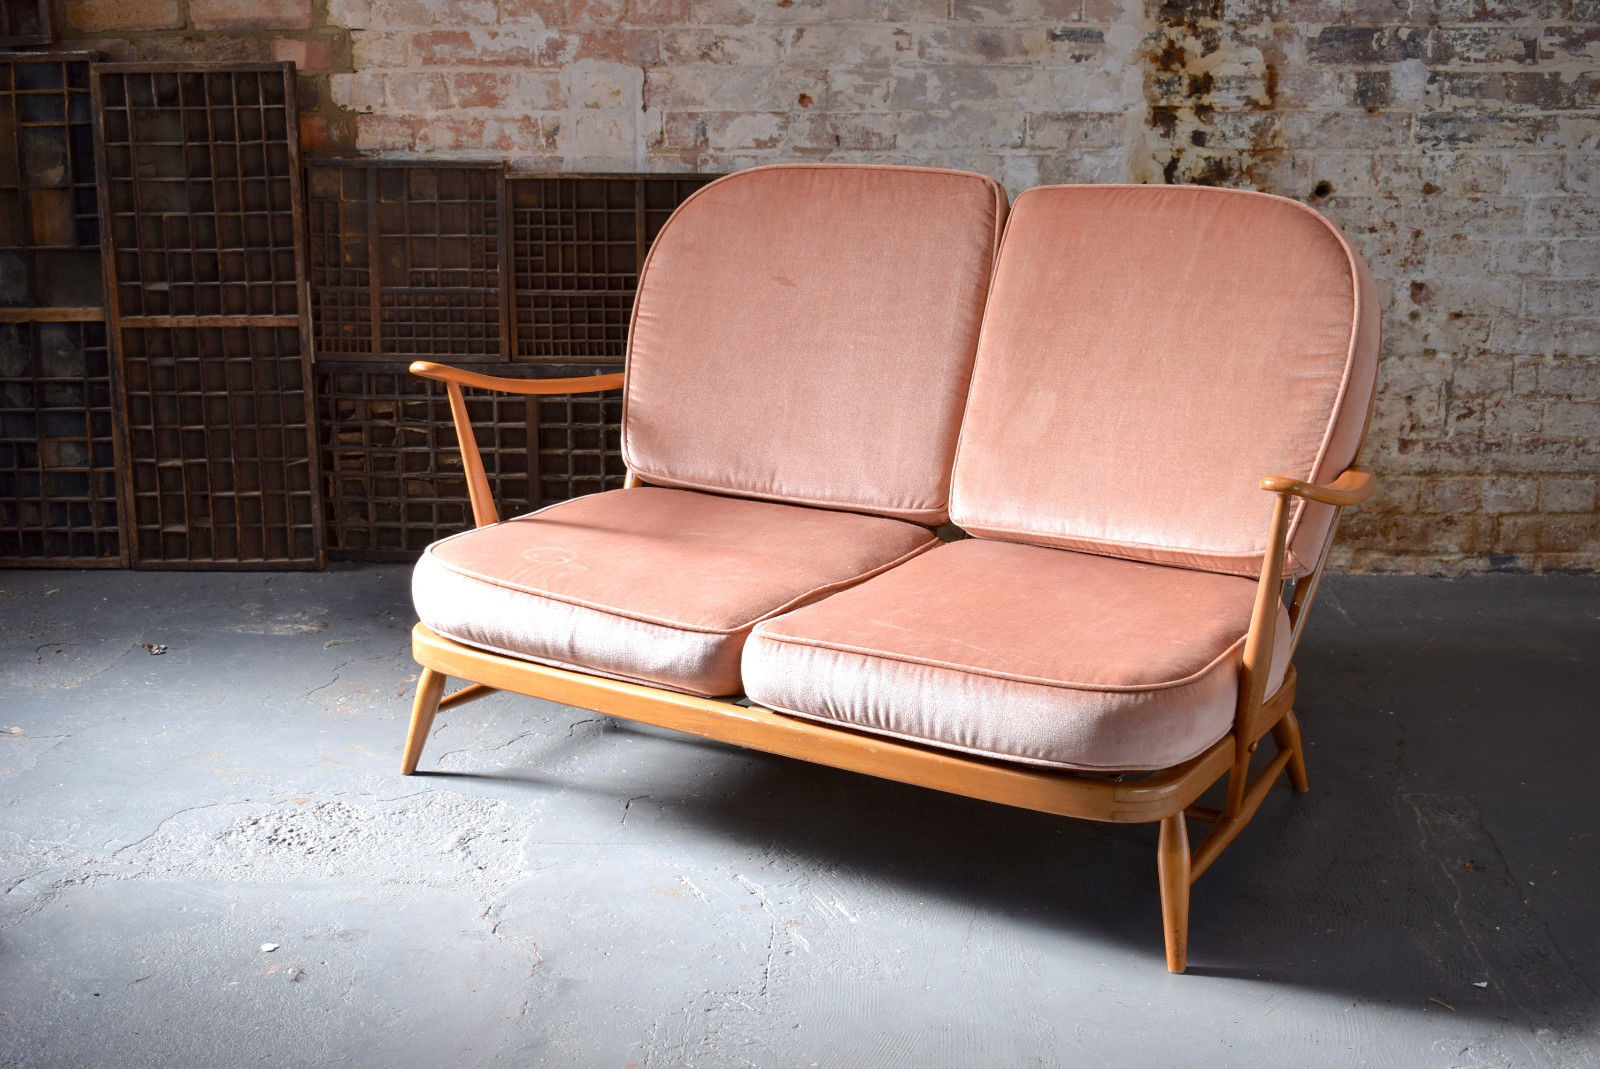 vintage-retro-mid-century-blonde-ercol-two-seater-windsor-sofa